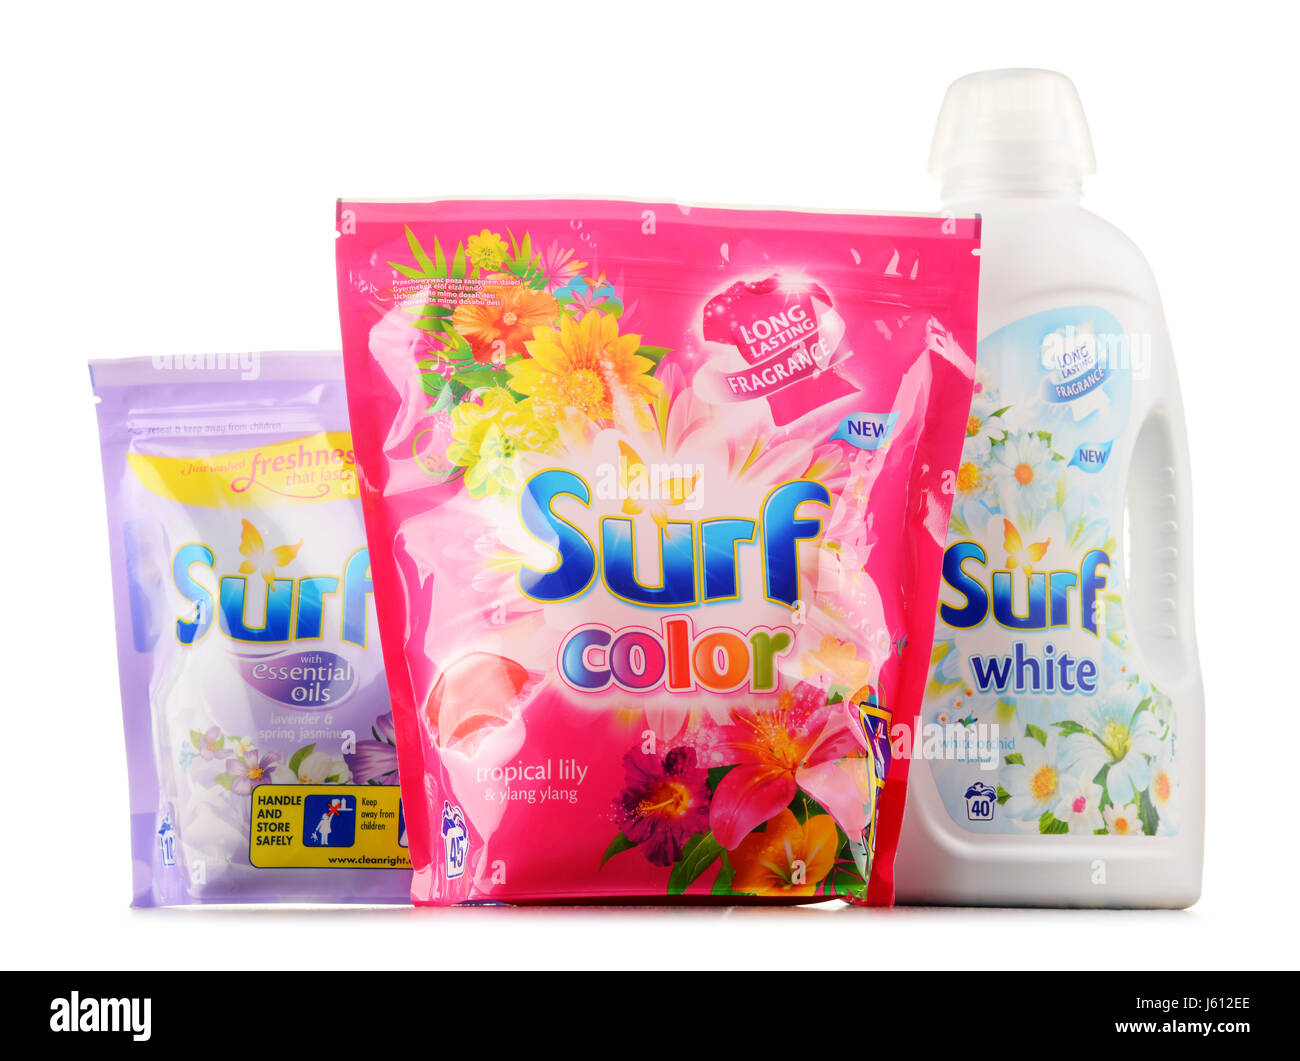 POZNAN, POLAND - JAN 19, 2017: Surf is a brand of laundry detergent made by Unilever. The product was introduced - Stock Image